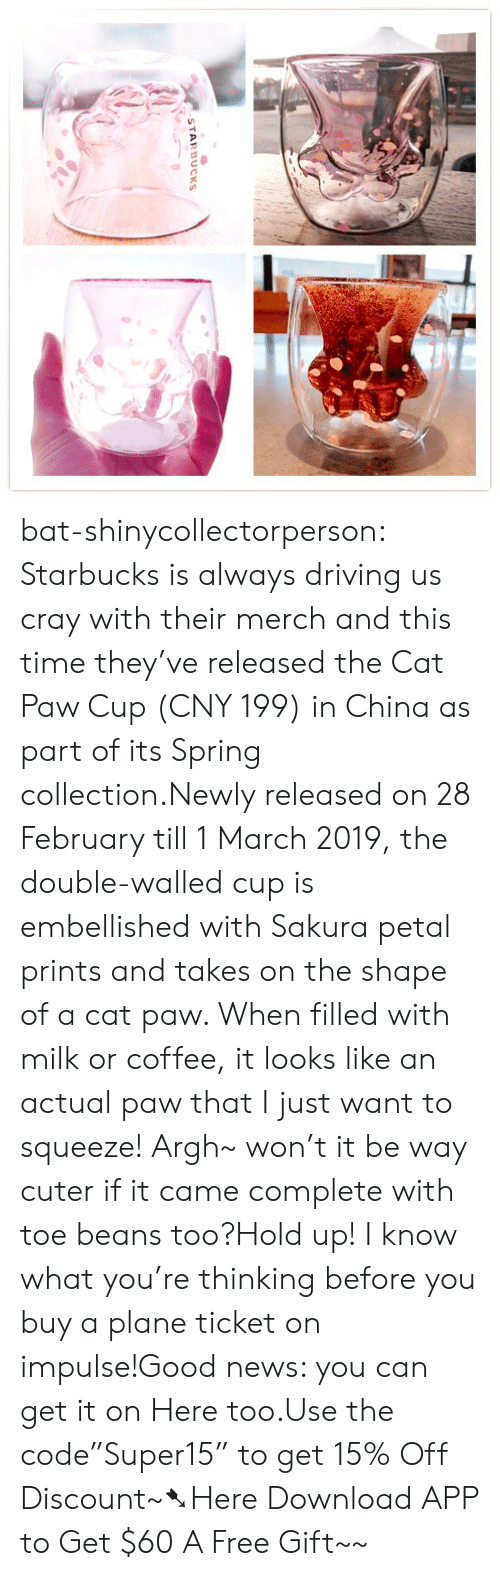 "the double: STARBUCKS bat-shinycollectorperson:  Starbucks is always driving us cray with their merch and this time they've released the Cat Paw Cup (CNY 199) in China as part of its Spring collection.Newly released on 28 February till 1 March 2019, the double-walled cup is embellished with Sakura petal prints and takes on the shape of a cat paw. When filled with milk or coffee, it looks like an actual paw that I just want to squeeze! Argh~ won't it be way cuter if it came complete with toe beans too?Hold up! I know what you're thinking before you buy a plane ticket on impulse!Good news: you can get it on Here too.Use the code""Super15"" to get 15% Off Discount~➷Here Download APP to Get $60  A Free Gift~~"